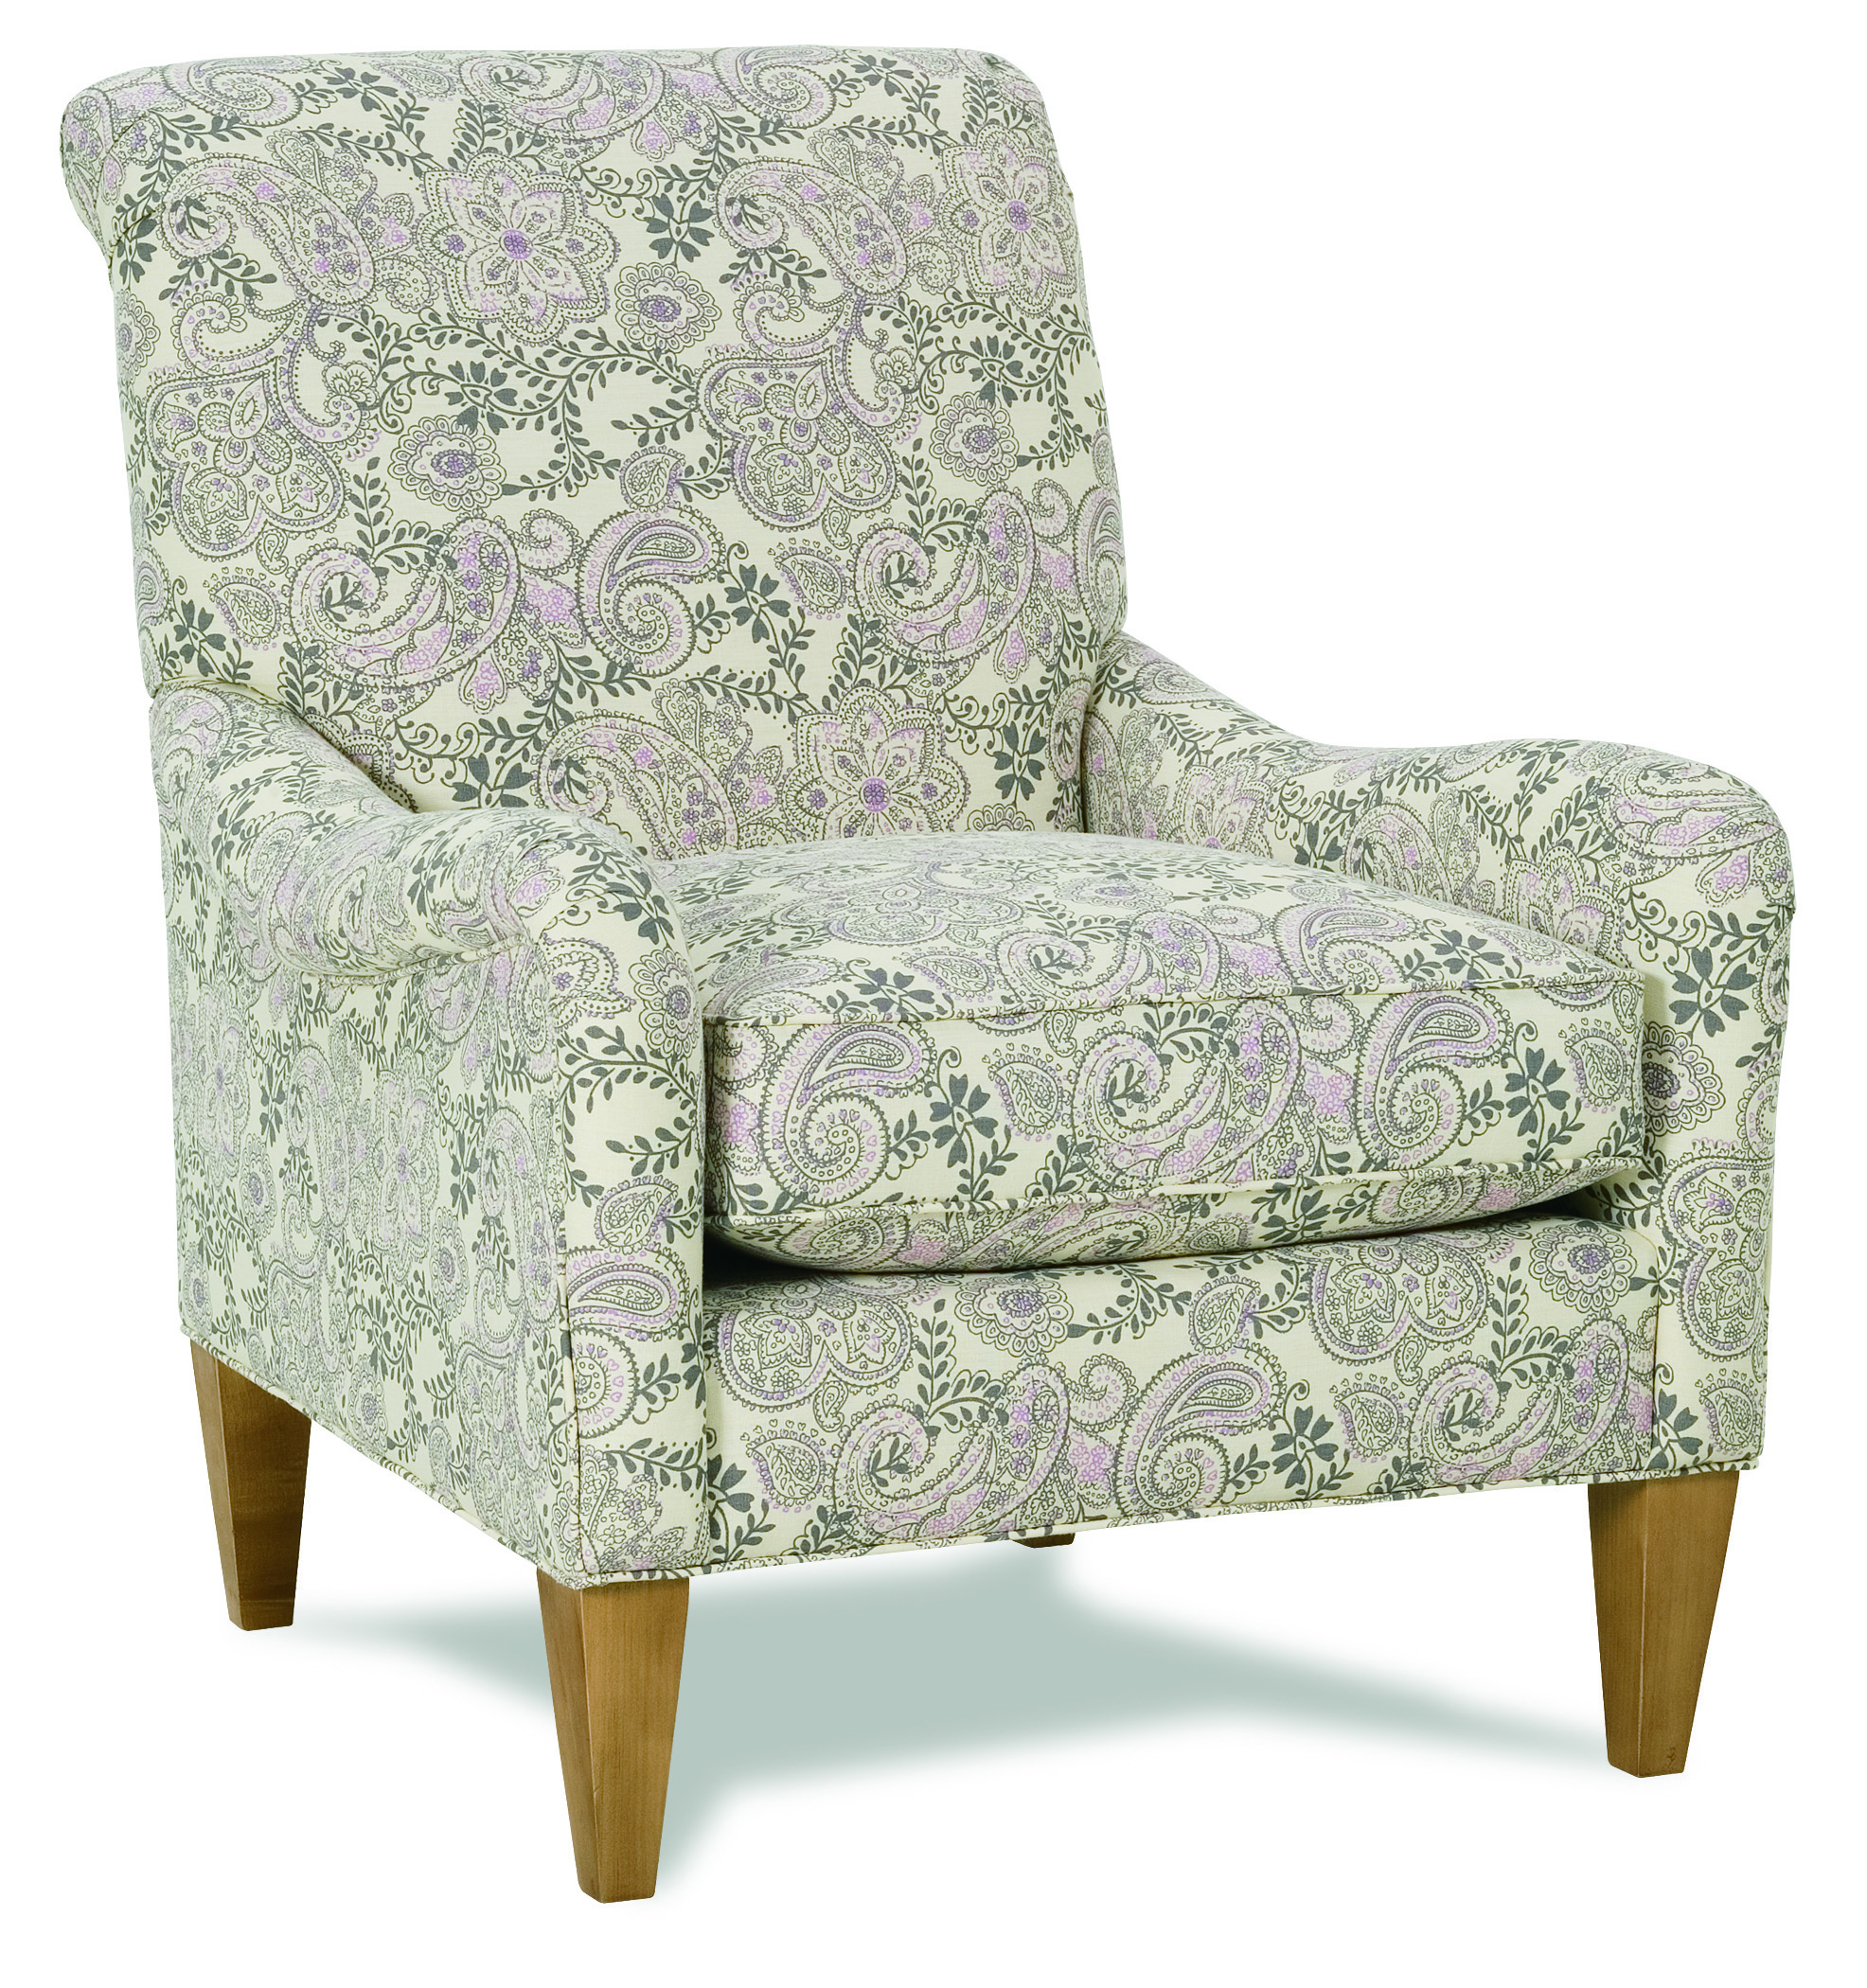 Captivating Accent Chair For Home Furniture Ideas With Accent Chairs With Arms And Accent Chairs For Living Room